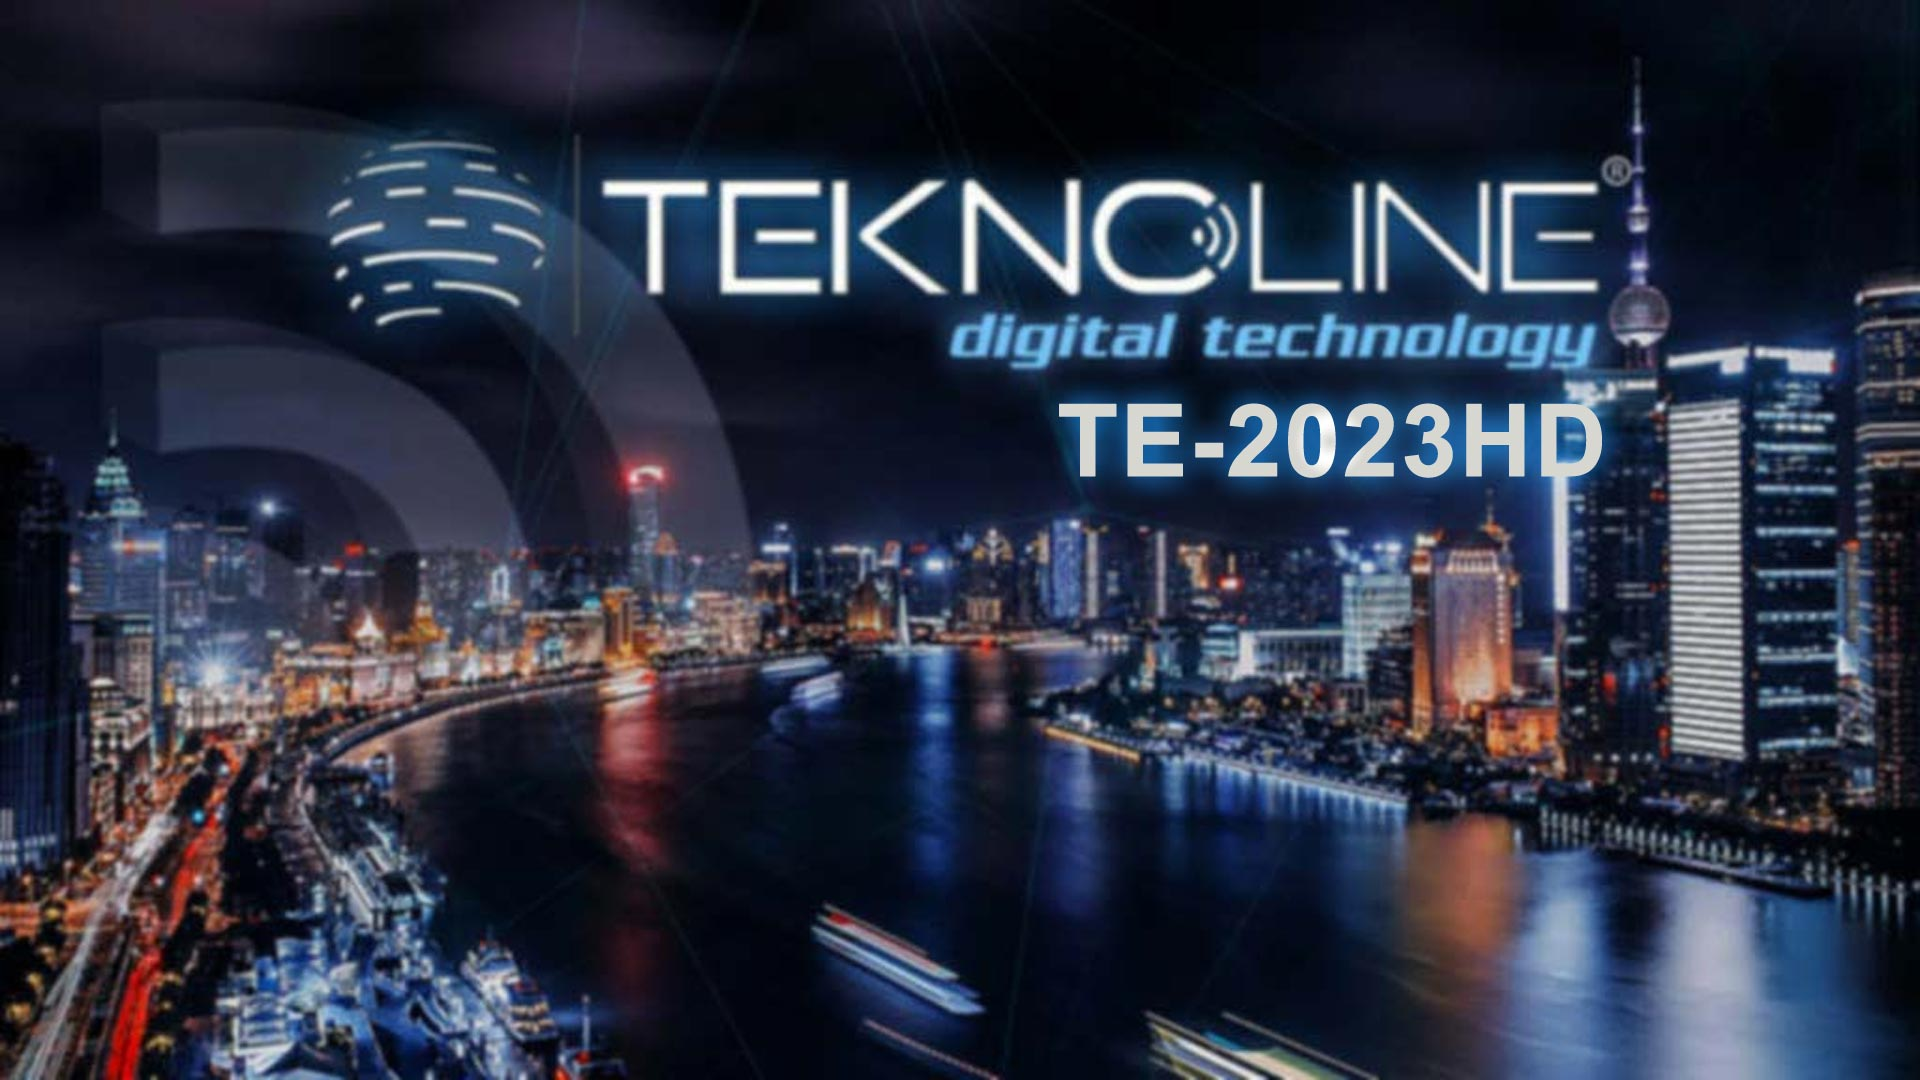 Download Software Teknoline TE-2023 HD TGX40 Firmware Receiver